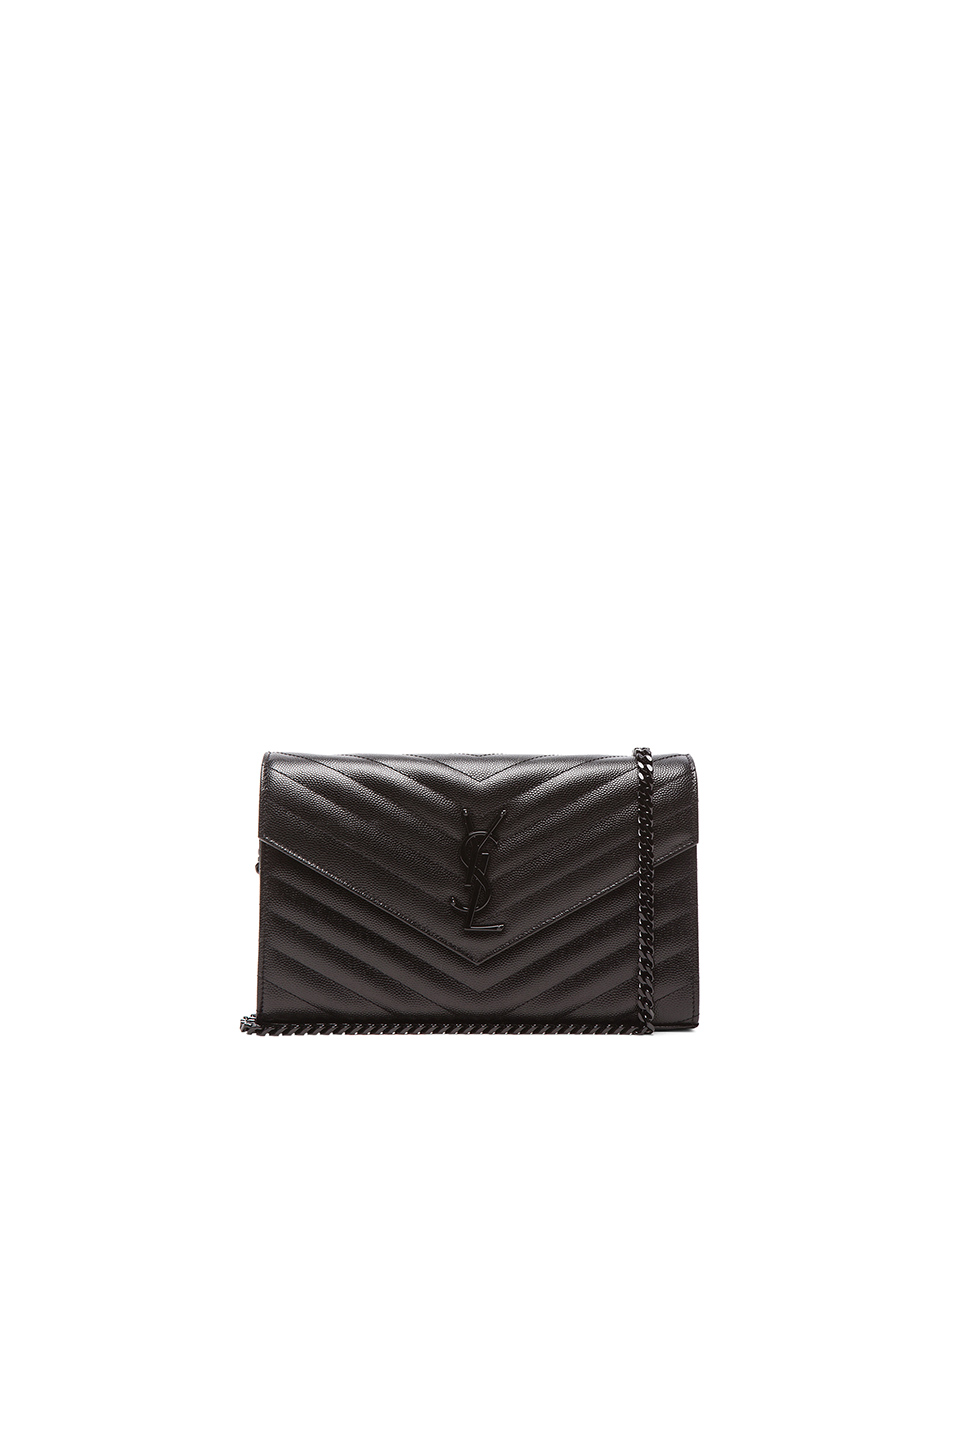 Monogram Ysl Small Matelasse Envelope Chain Wallet, Black, Black & Black